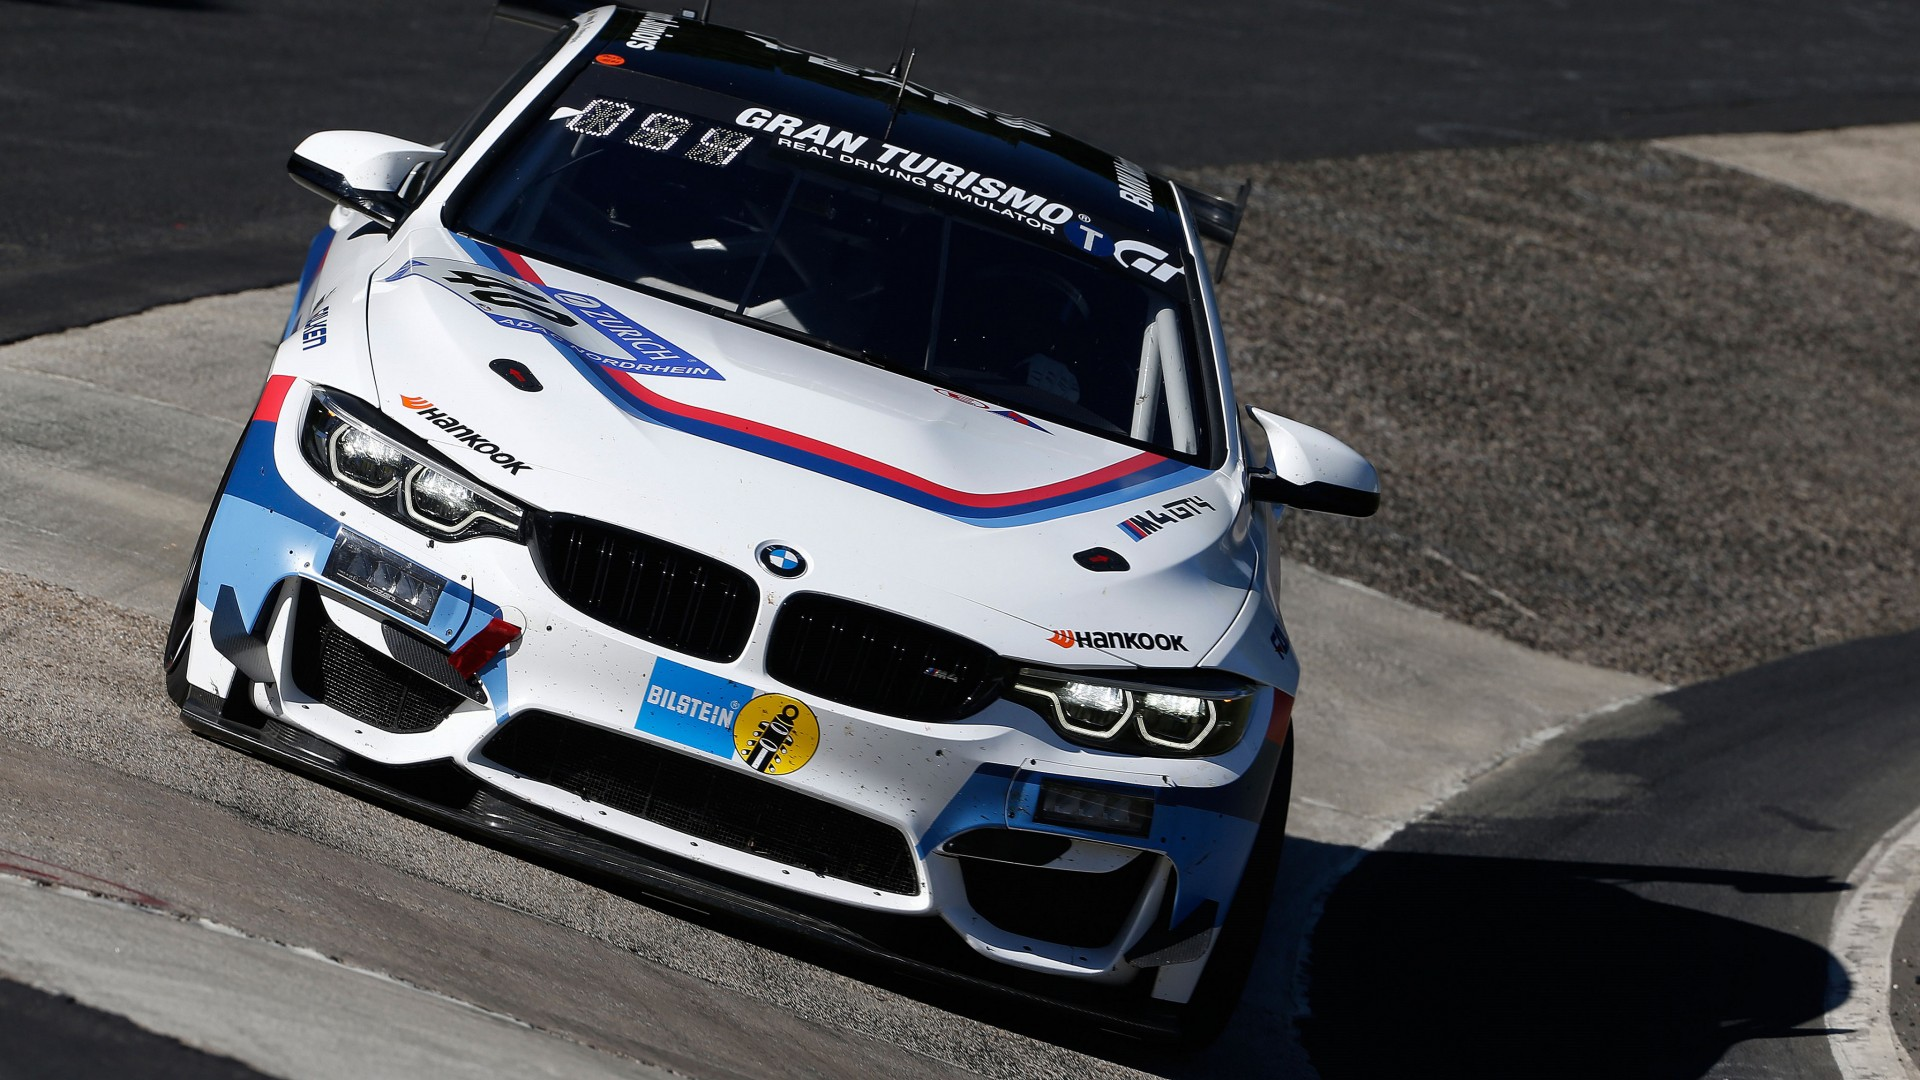 BMW M4 GT4 Racing car 4K Wallpaper | HD Car Wallpapers ...